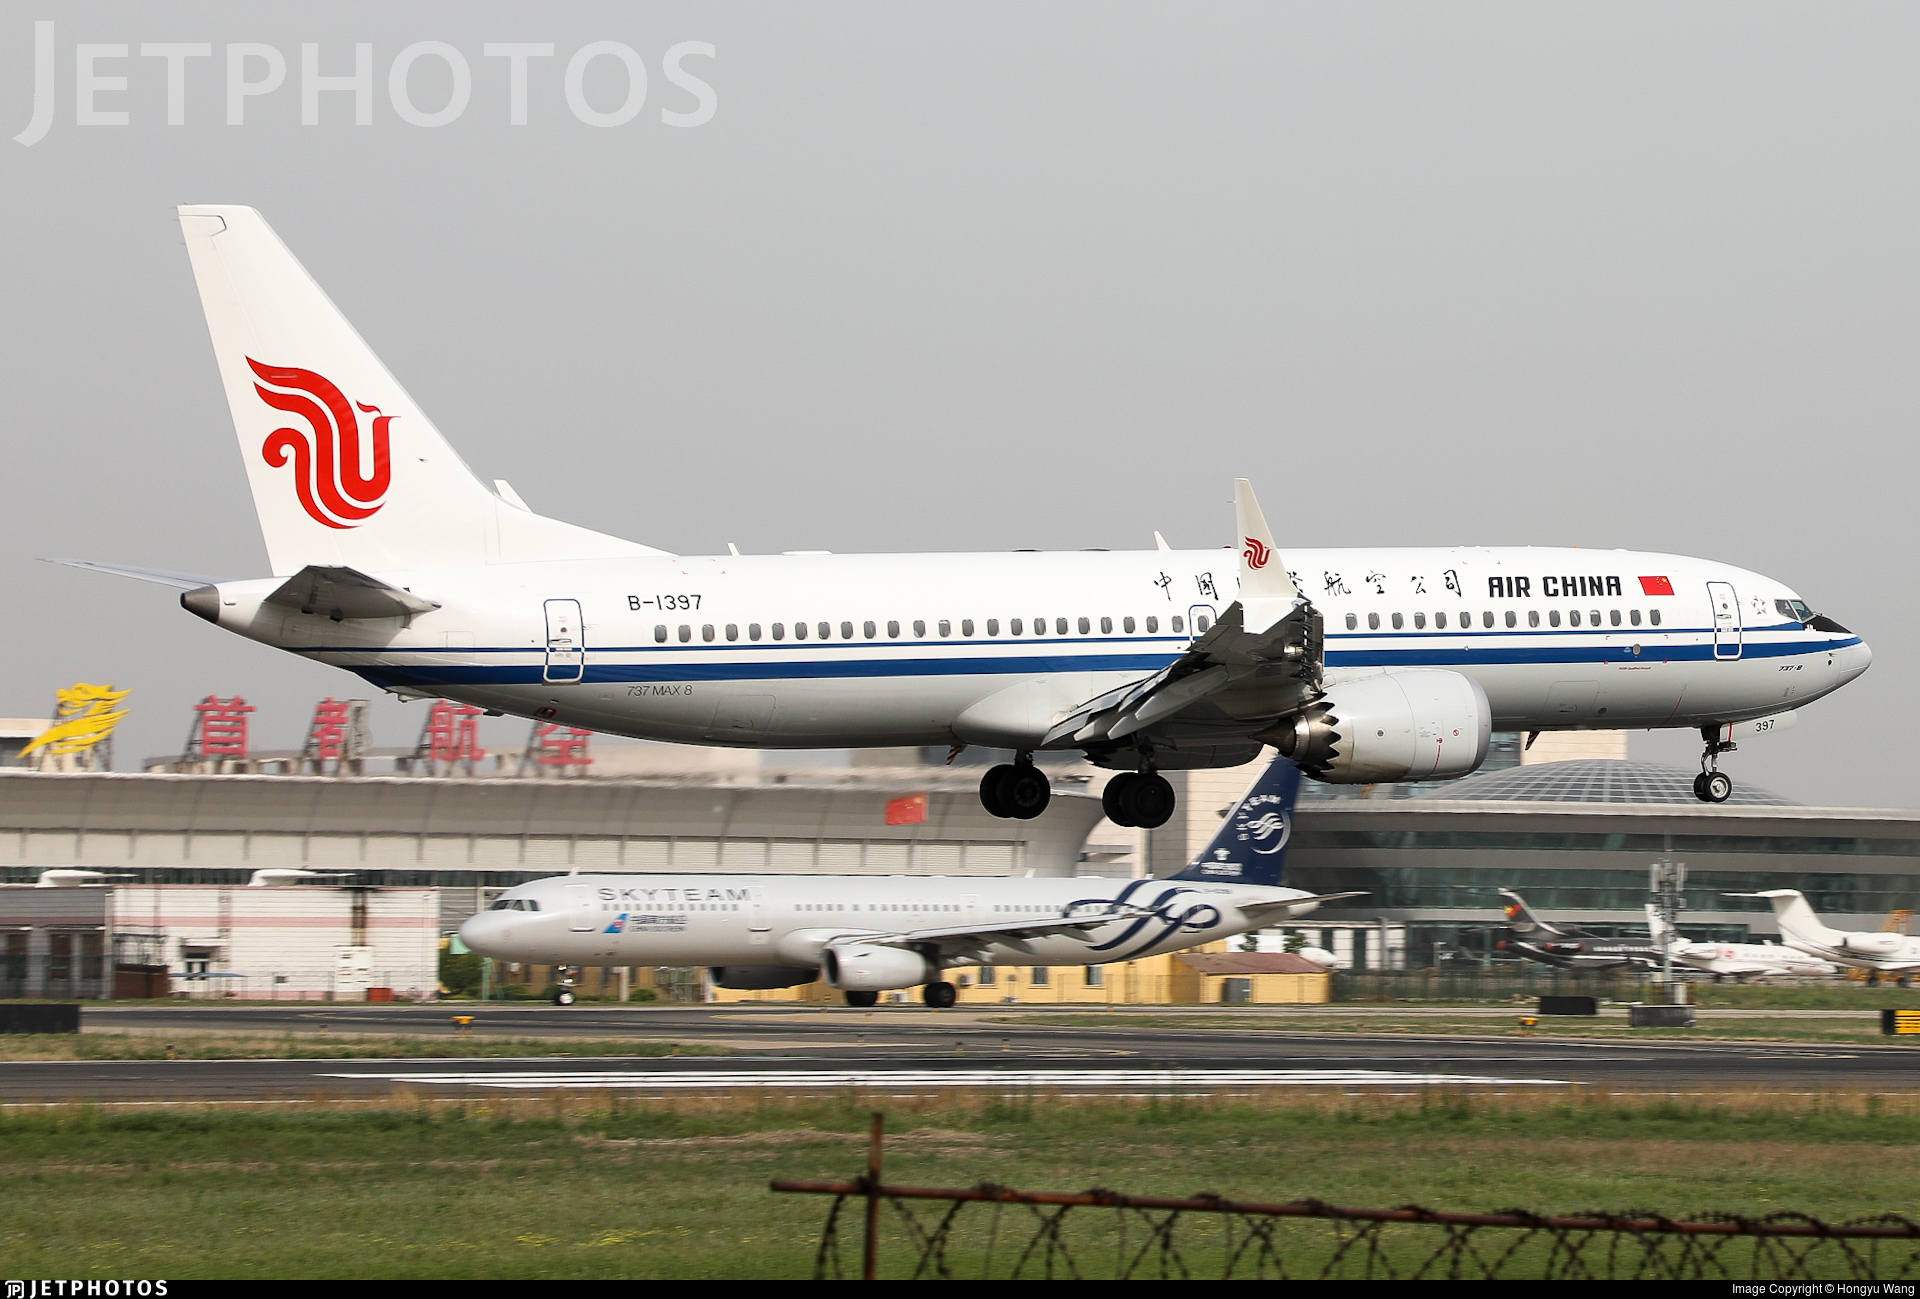 Air China 737 MAX when will CAAC approve